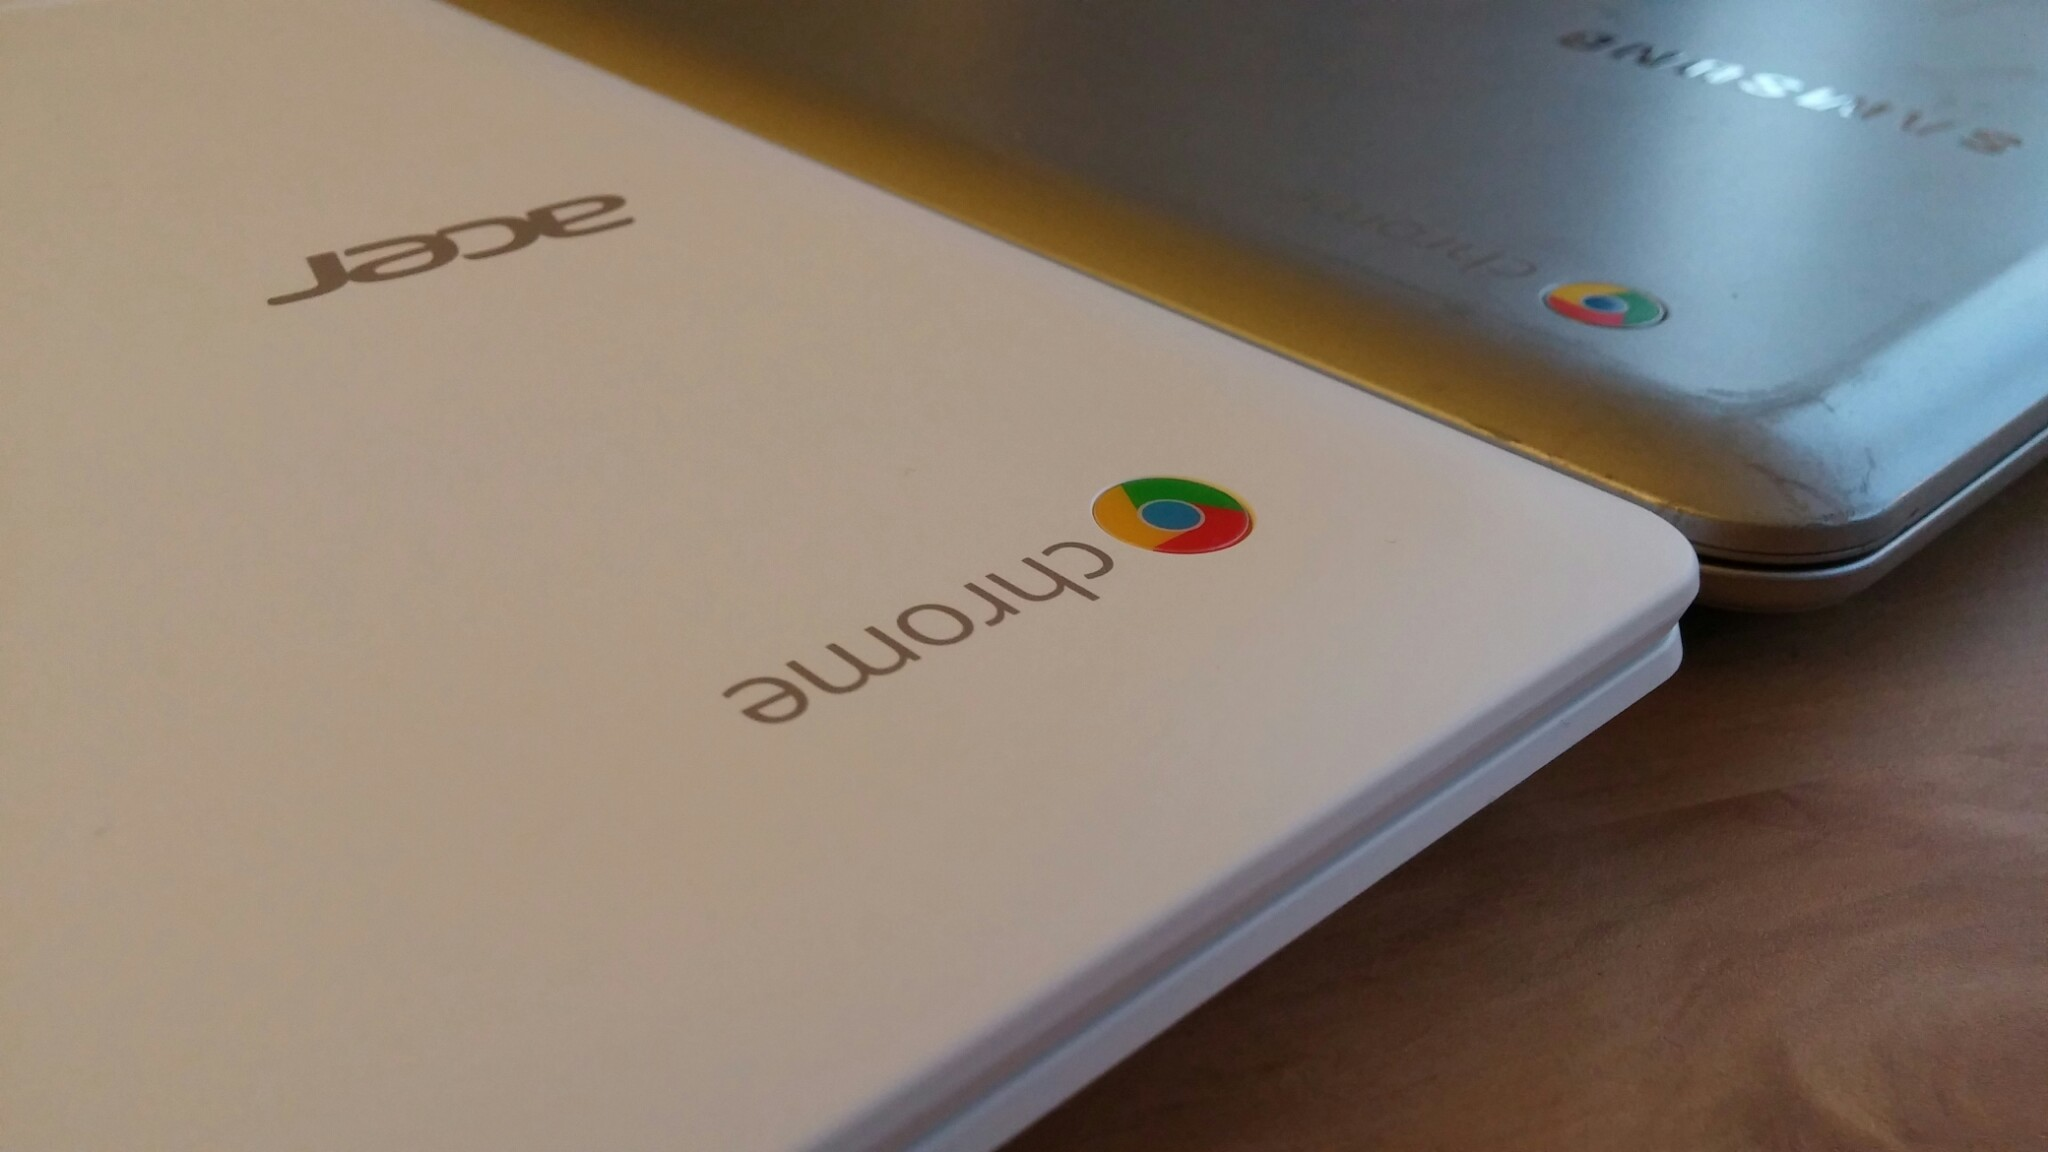 All Chromebooks are adorned with Google's Chrome logo